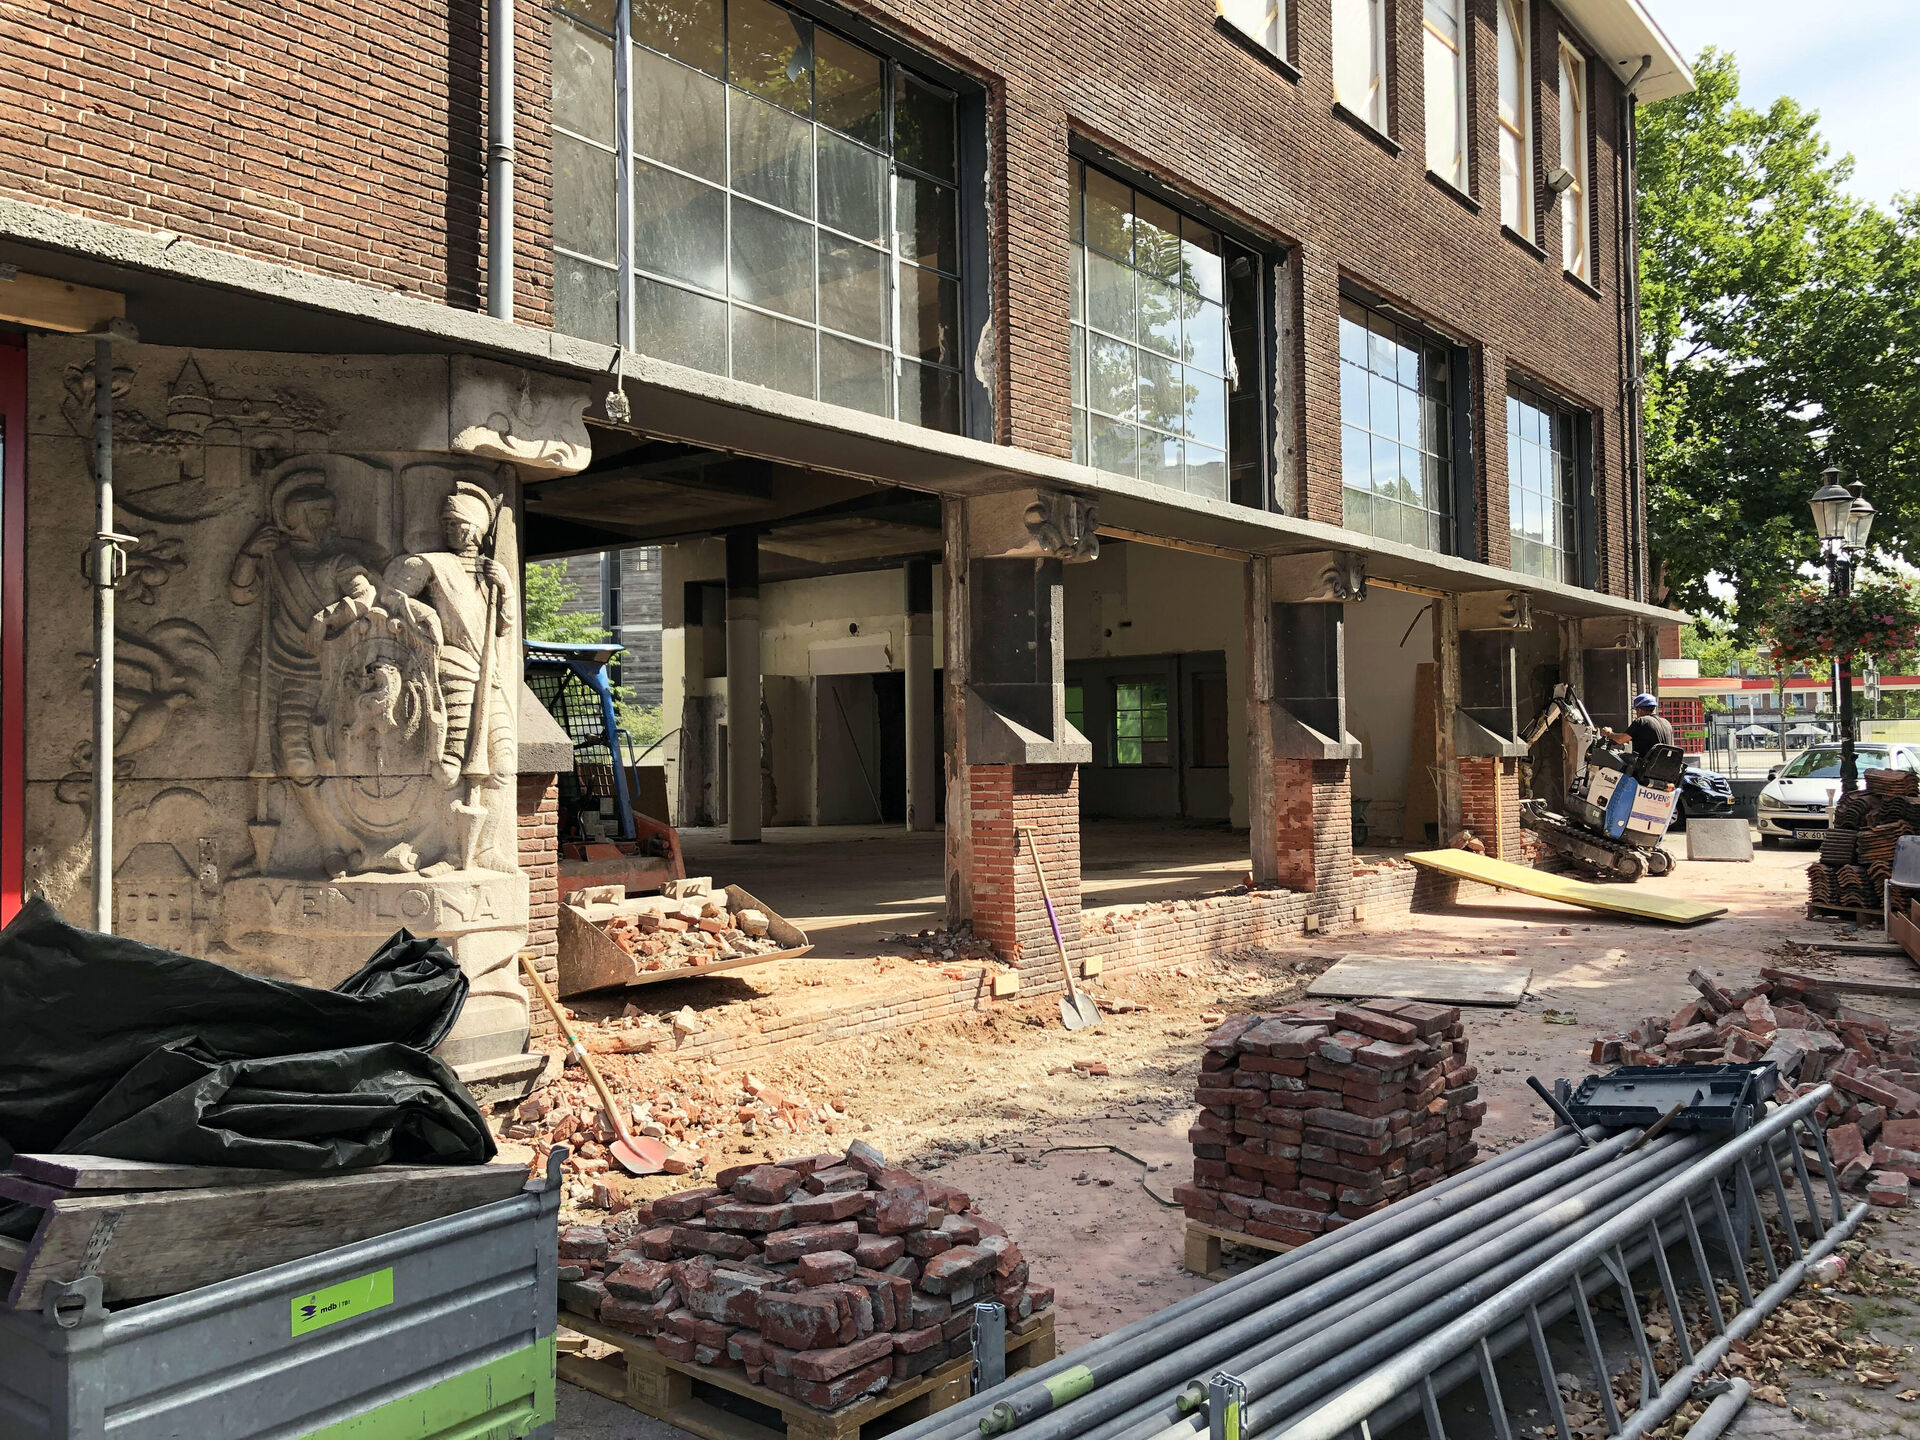 Construction phase of Museum van Bommel van Dam started!